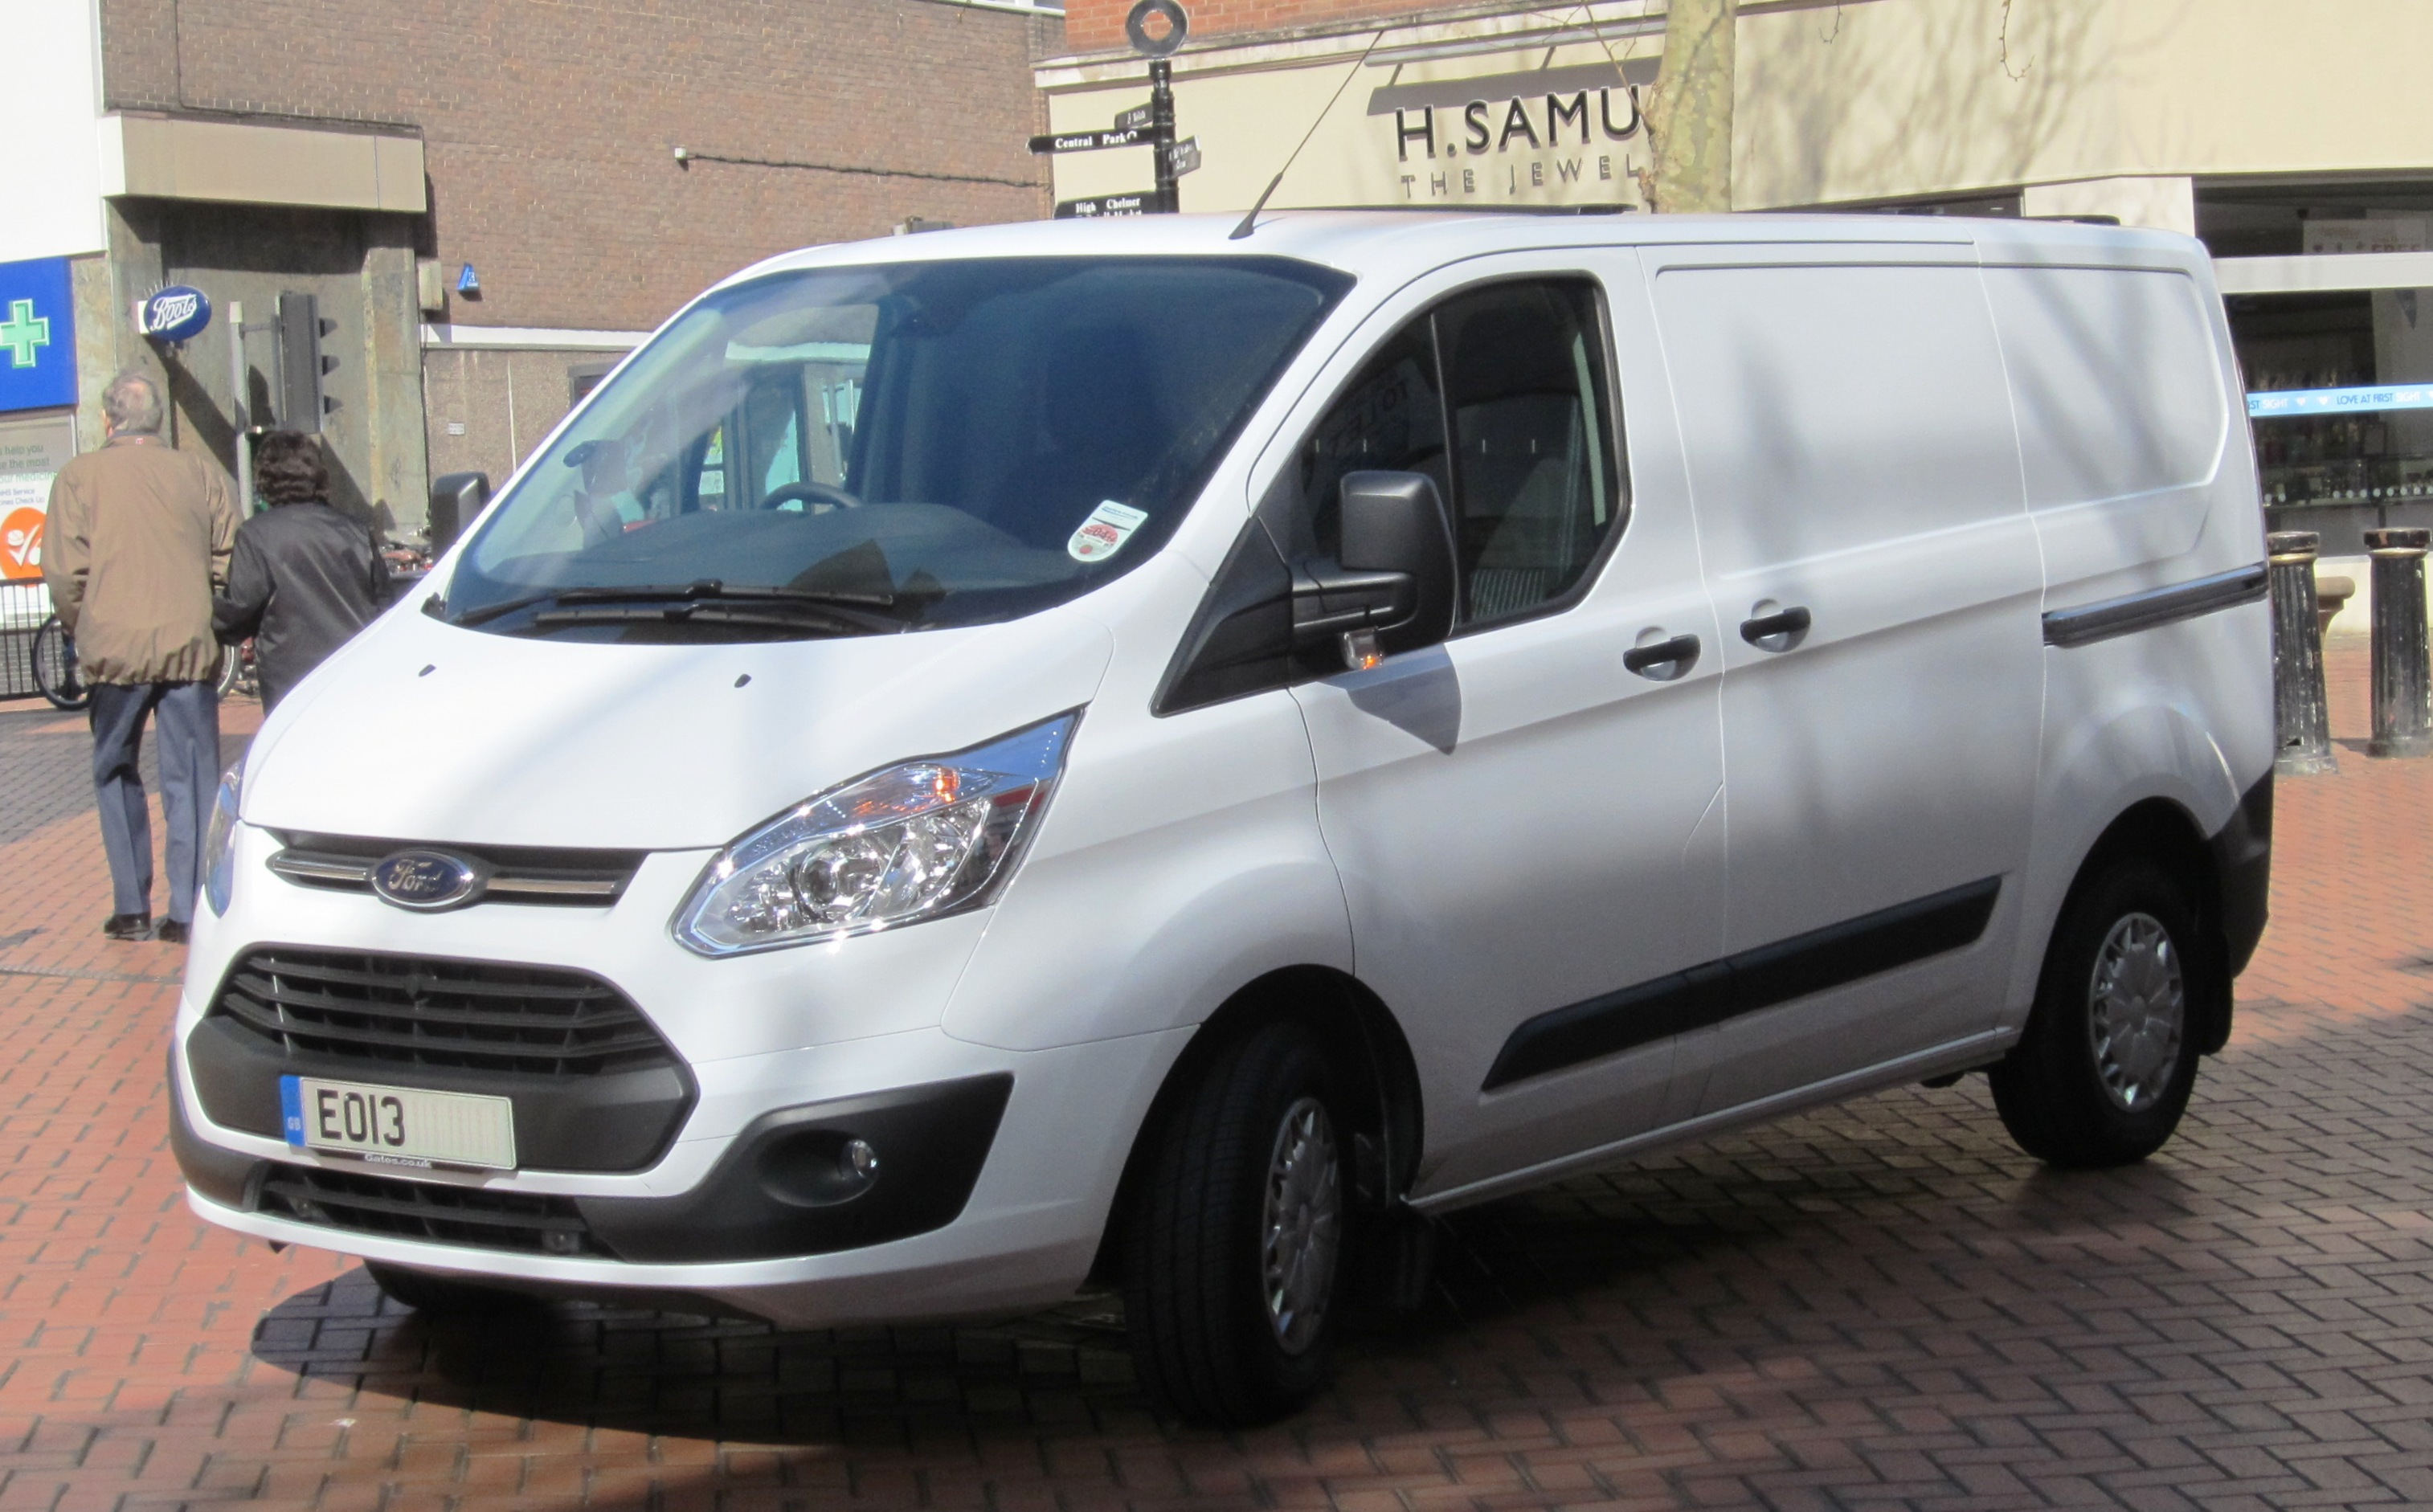 file ford transit mfd turkey reg april 2013 2198cc diesel. Black Bedroom Furniture Sets. Home Design Ideas